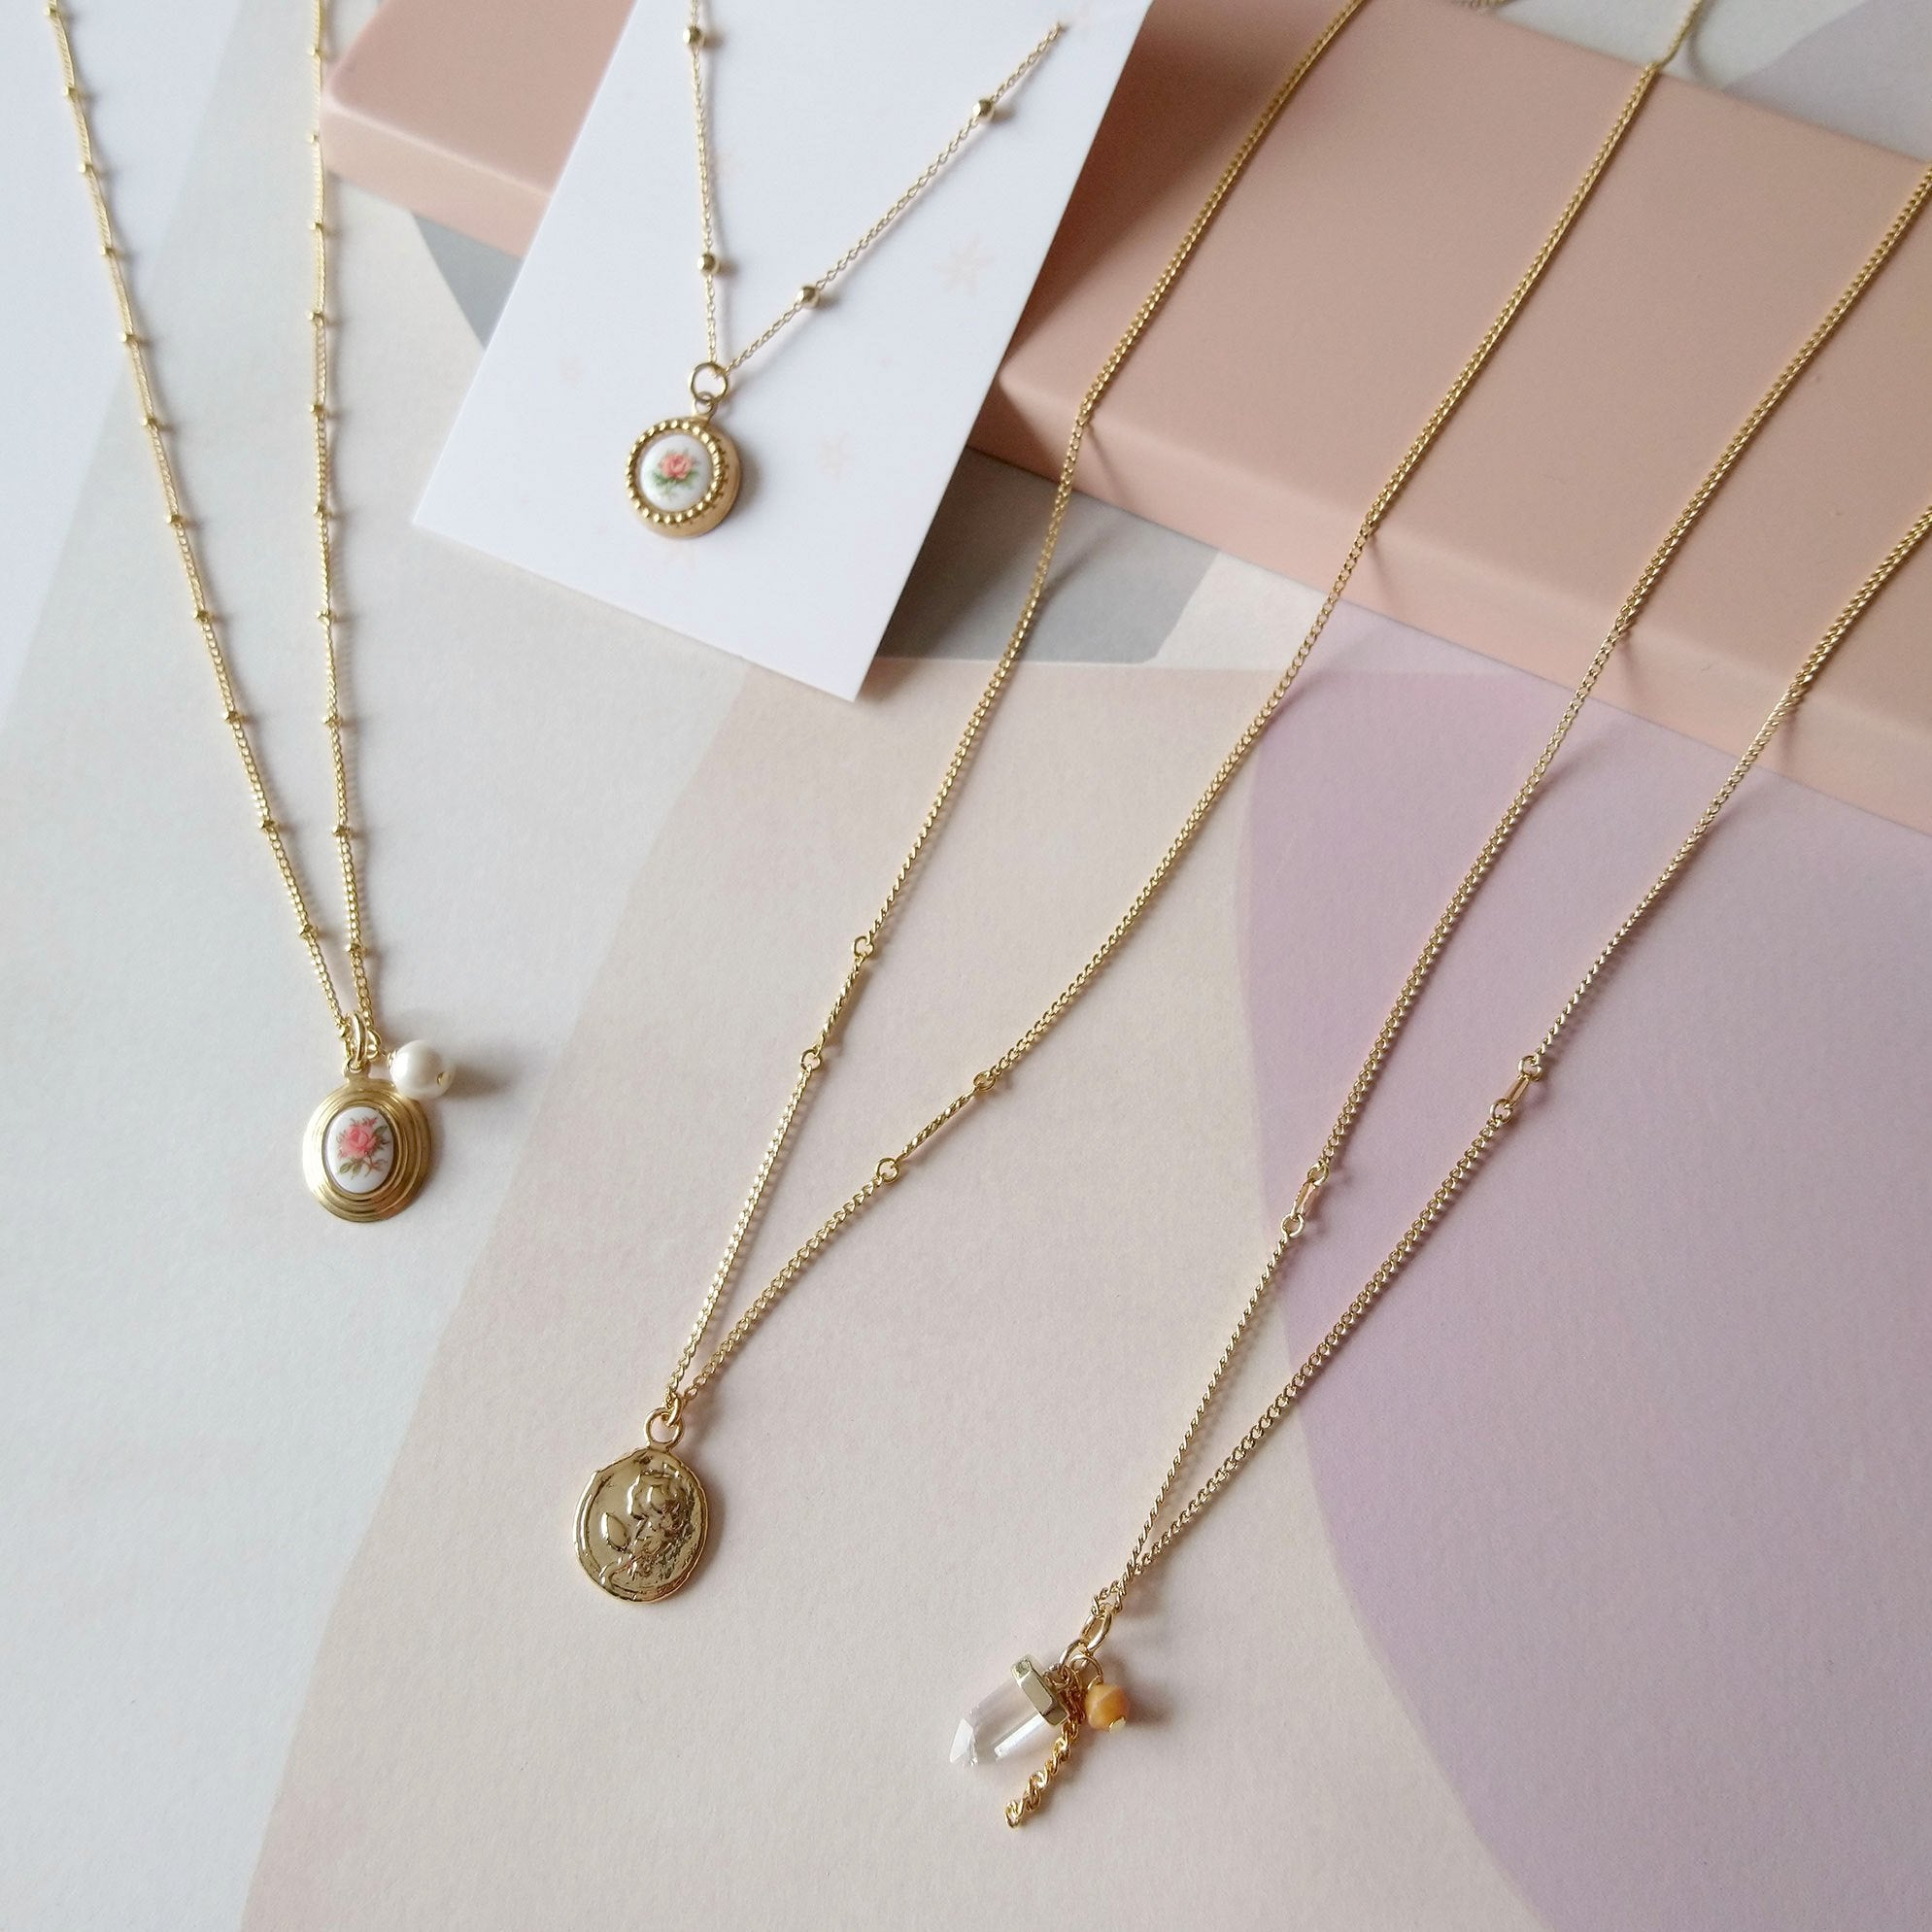 Gold necklaces to layer